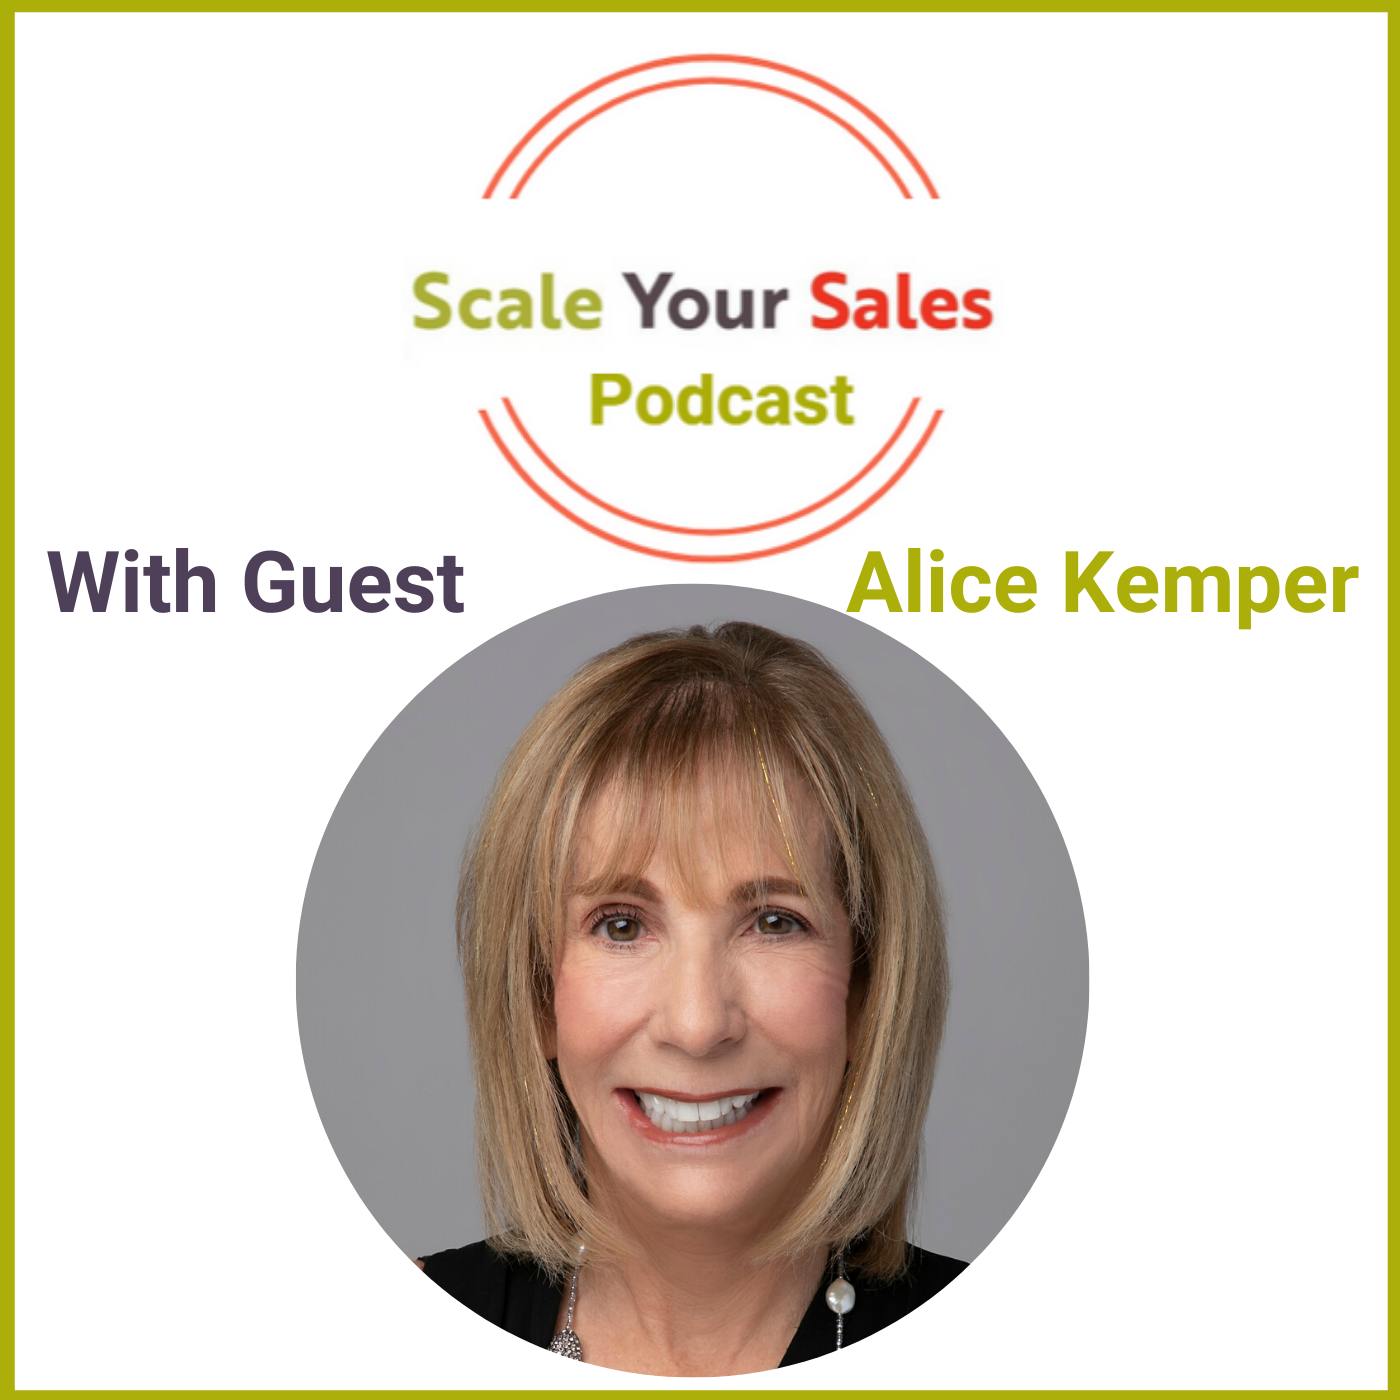 Episode 011 Alice Kemper On How to Up Level Your Top Sales Performers